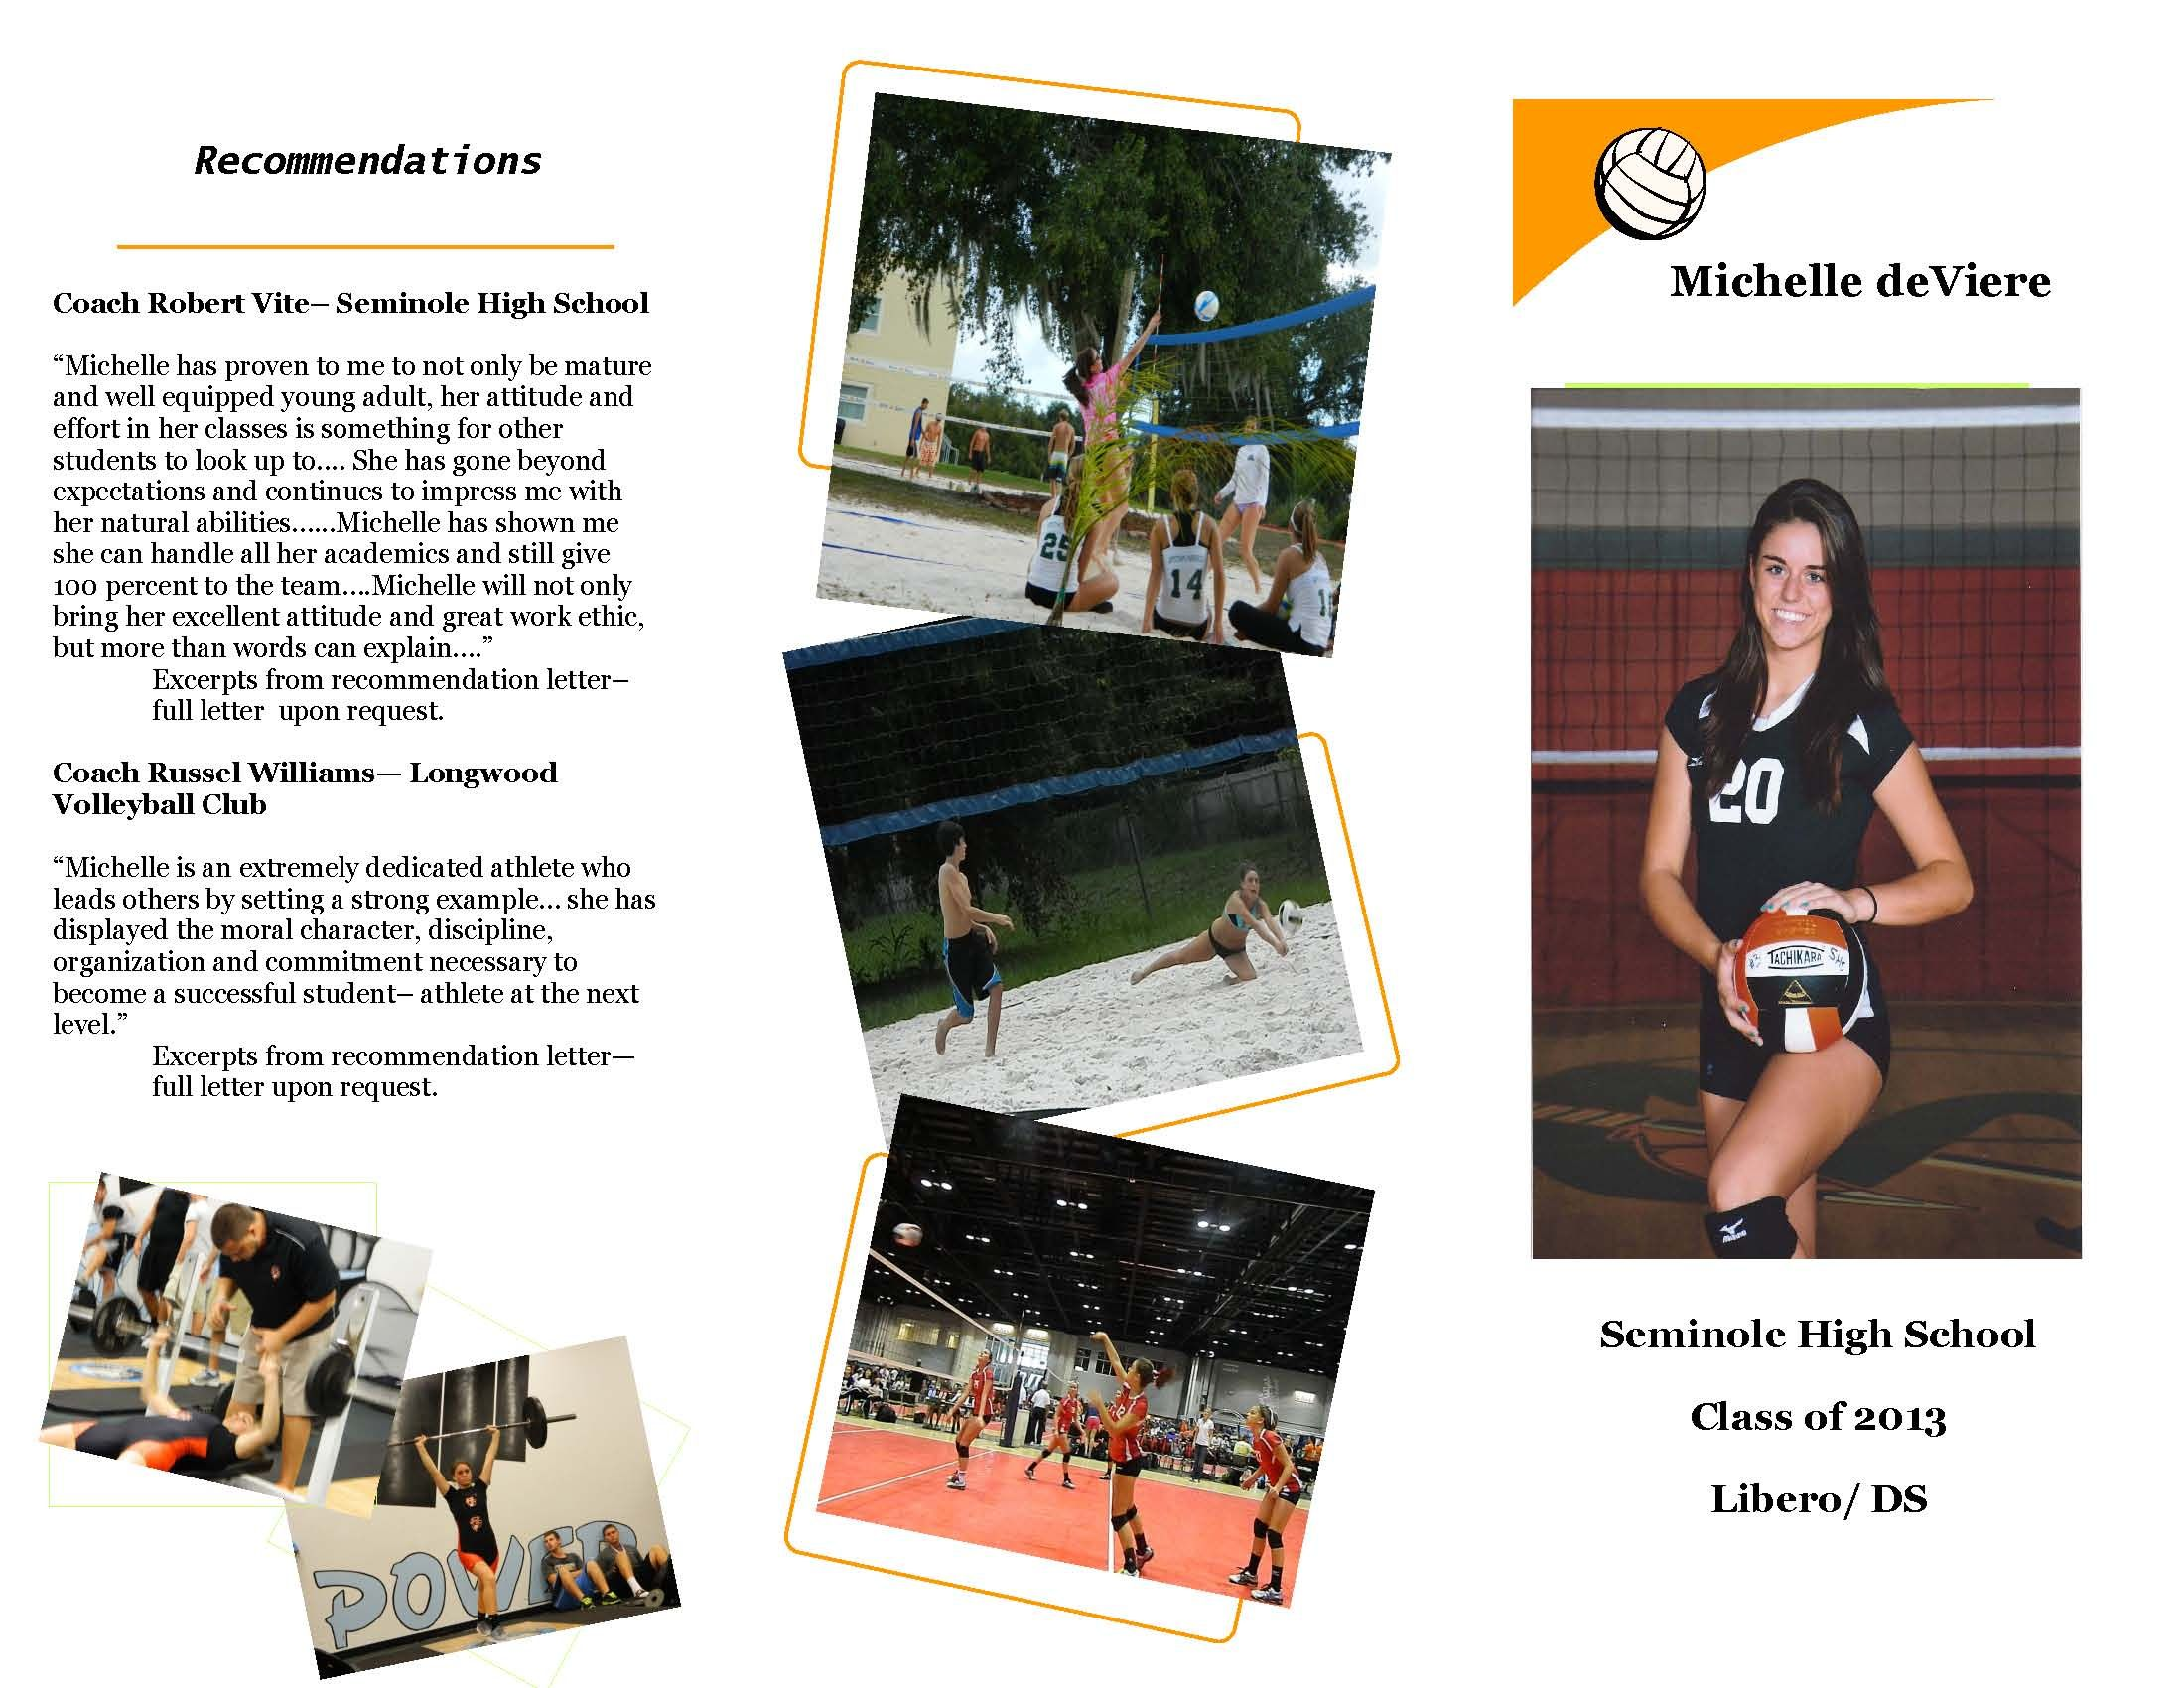 michelle deviere college recruiting brochure volleyball